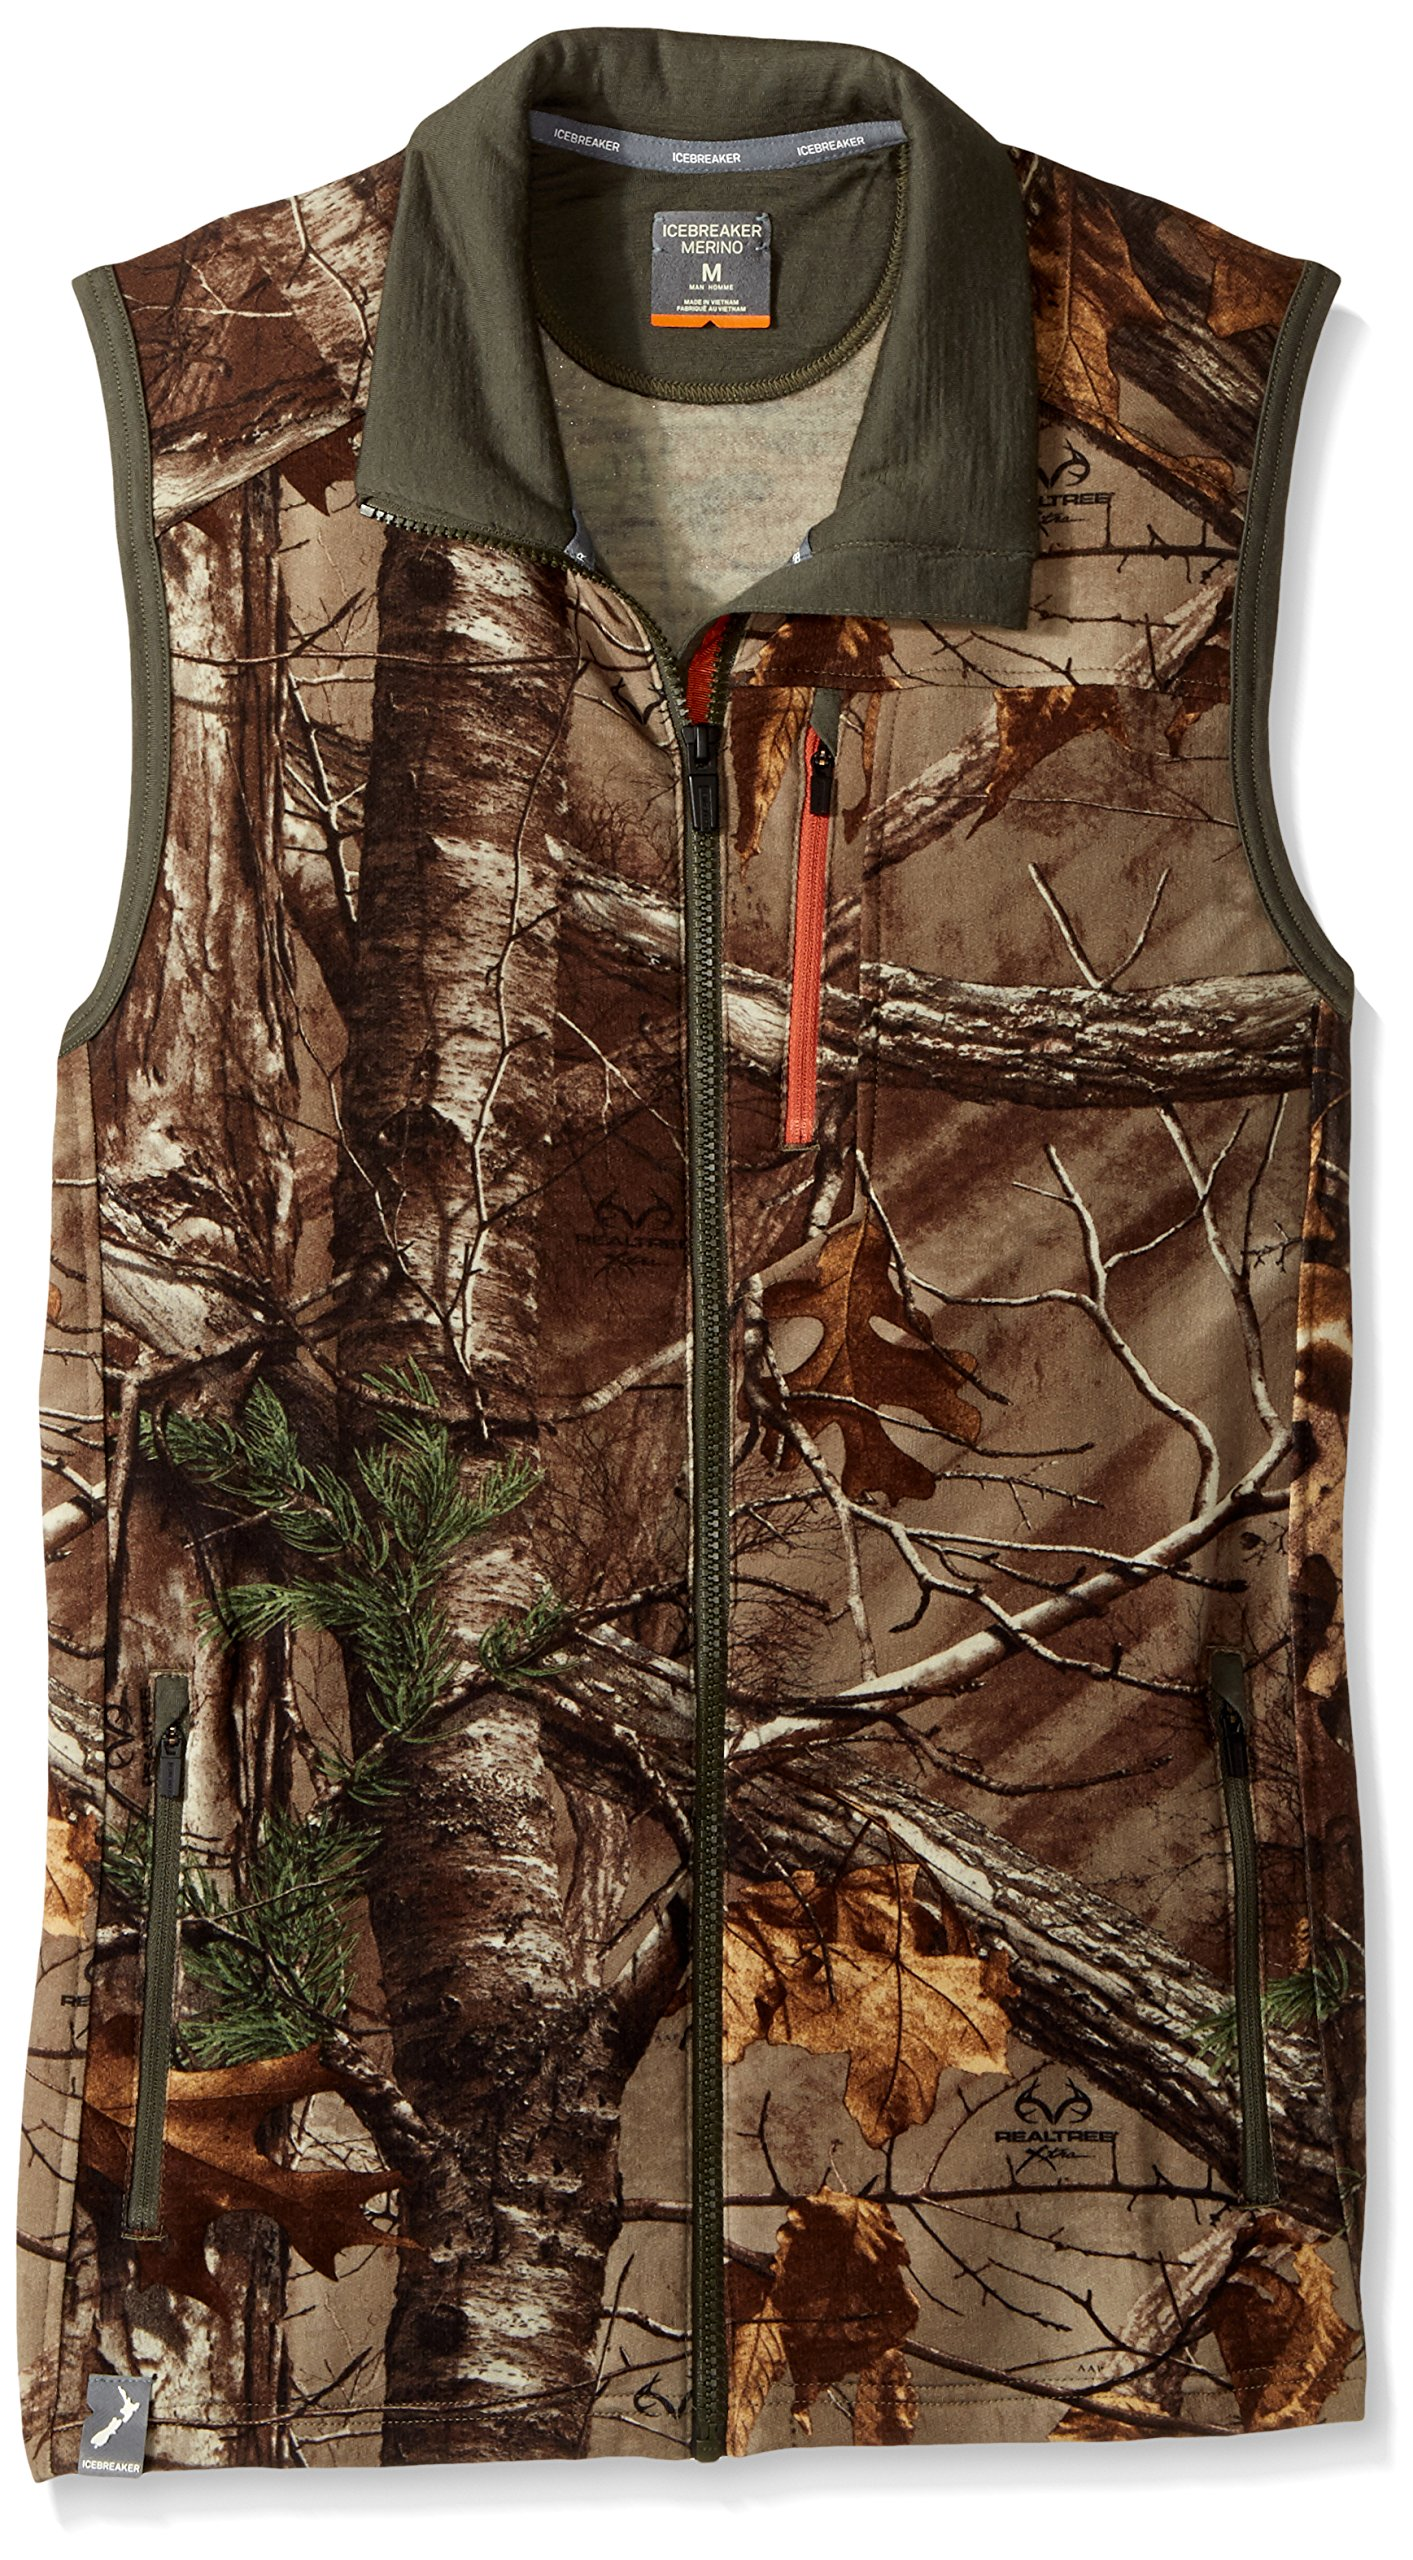 Icebreaker Men's Sierra Vest, Real Tree Xtra/Cargo/Copper, X-Large by Icebreaker Merino